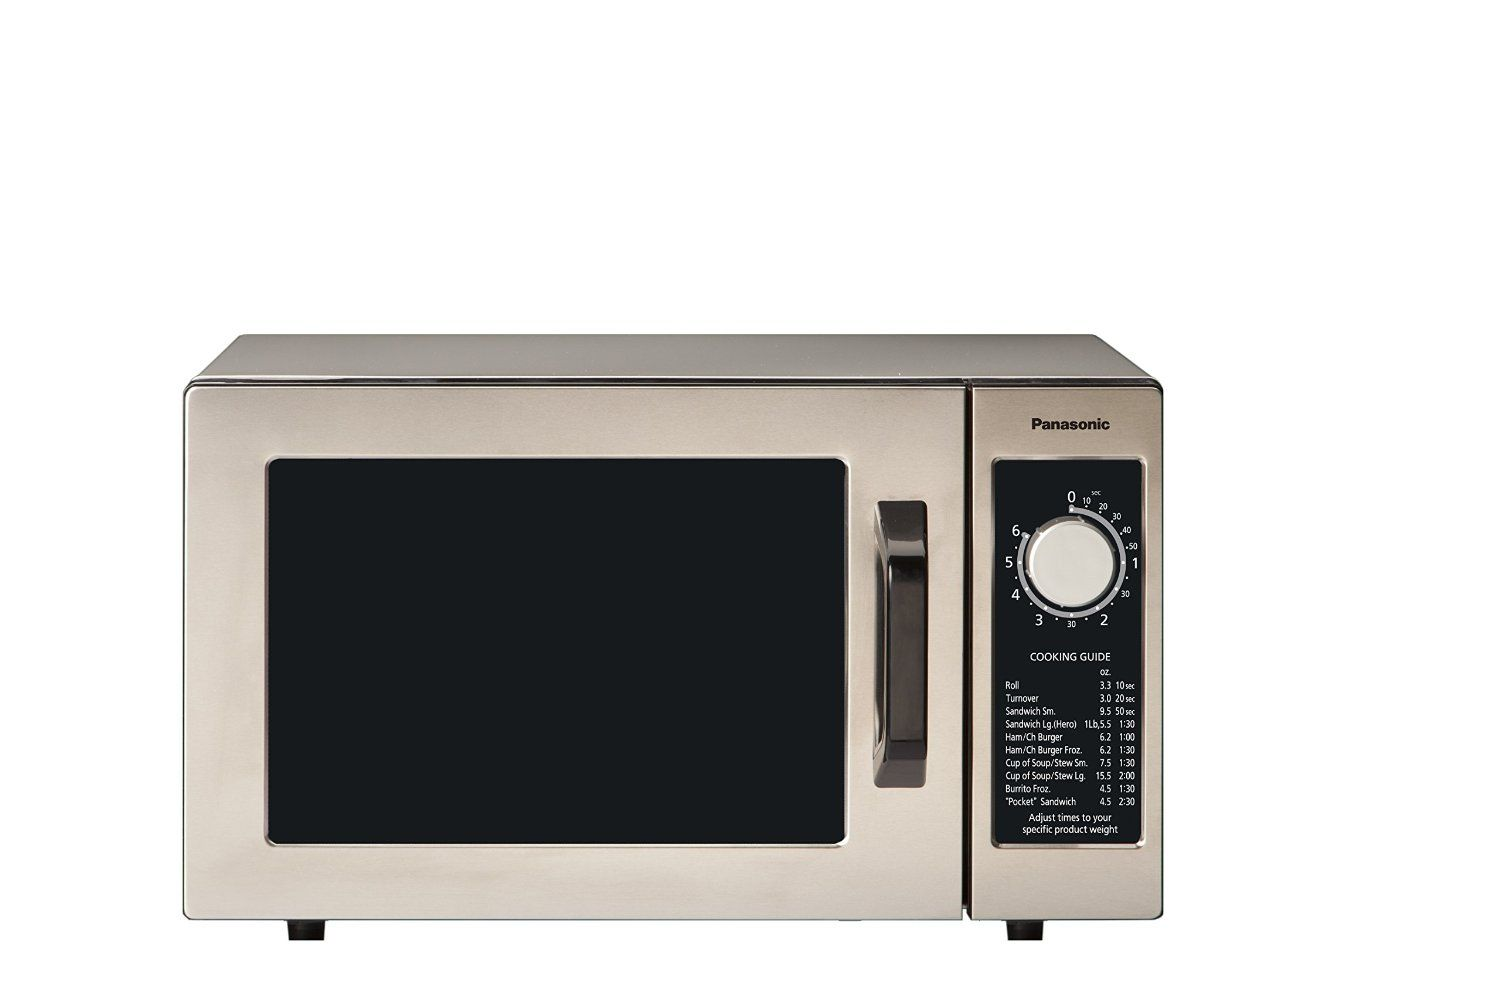 Amazon Com Panasonic Ne 1025f Silver 1000w Commercial Microwave Oven Kitchen Dining Countertop Microwave Microwave Microwave Oven